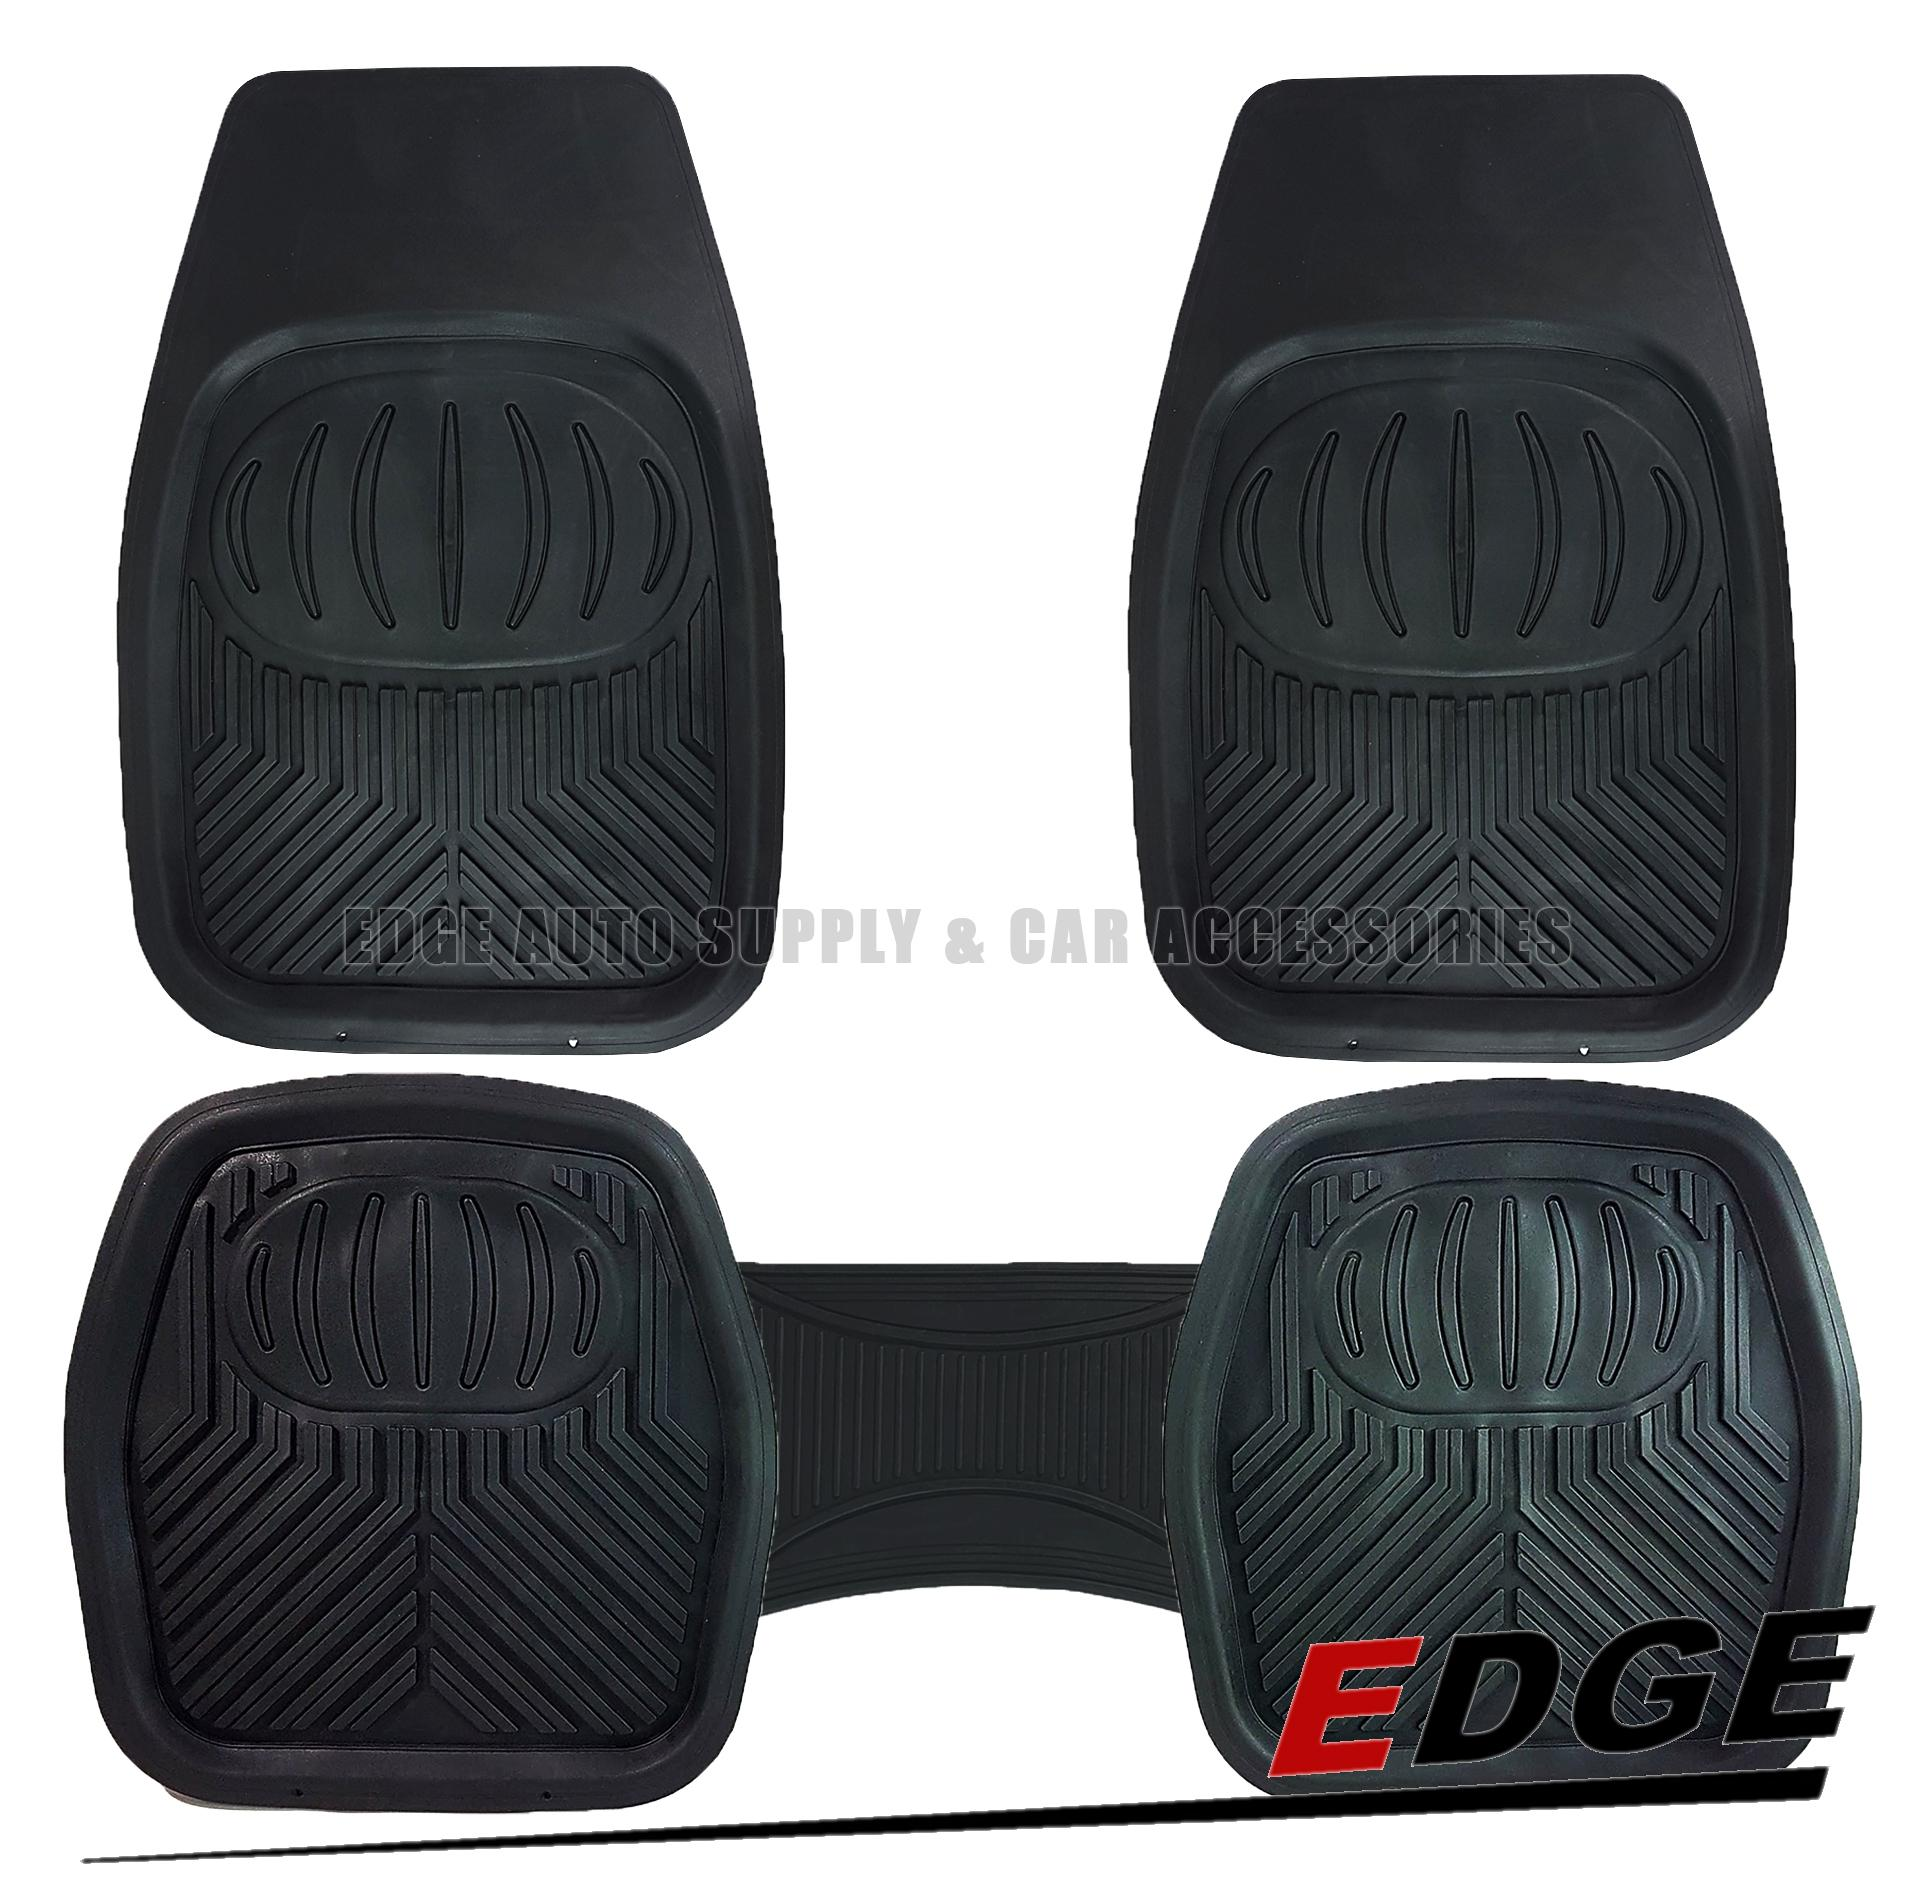 (RUBBER MATTING - UNIVERSAL - DEEP DISH - 5pcs/SET) car mat floor